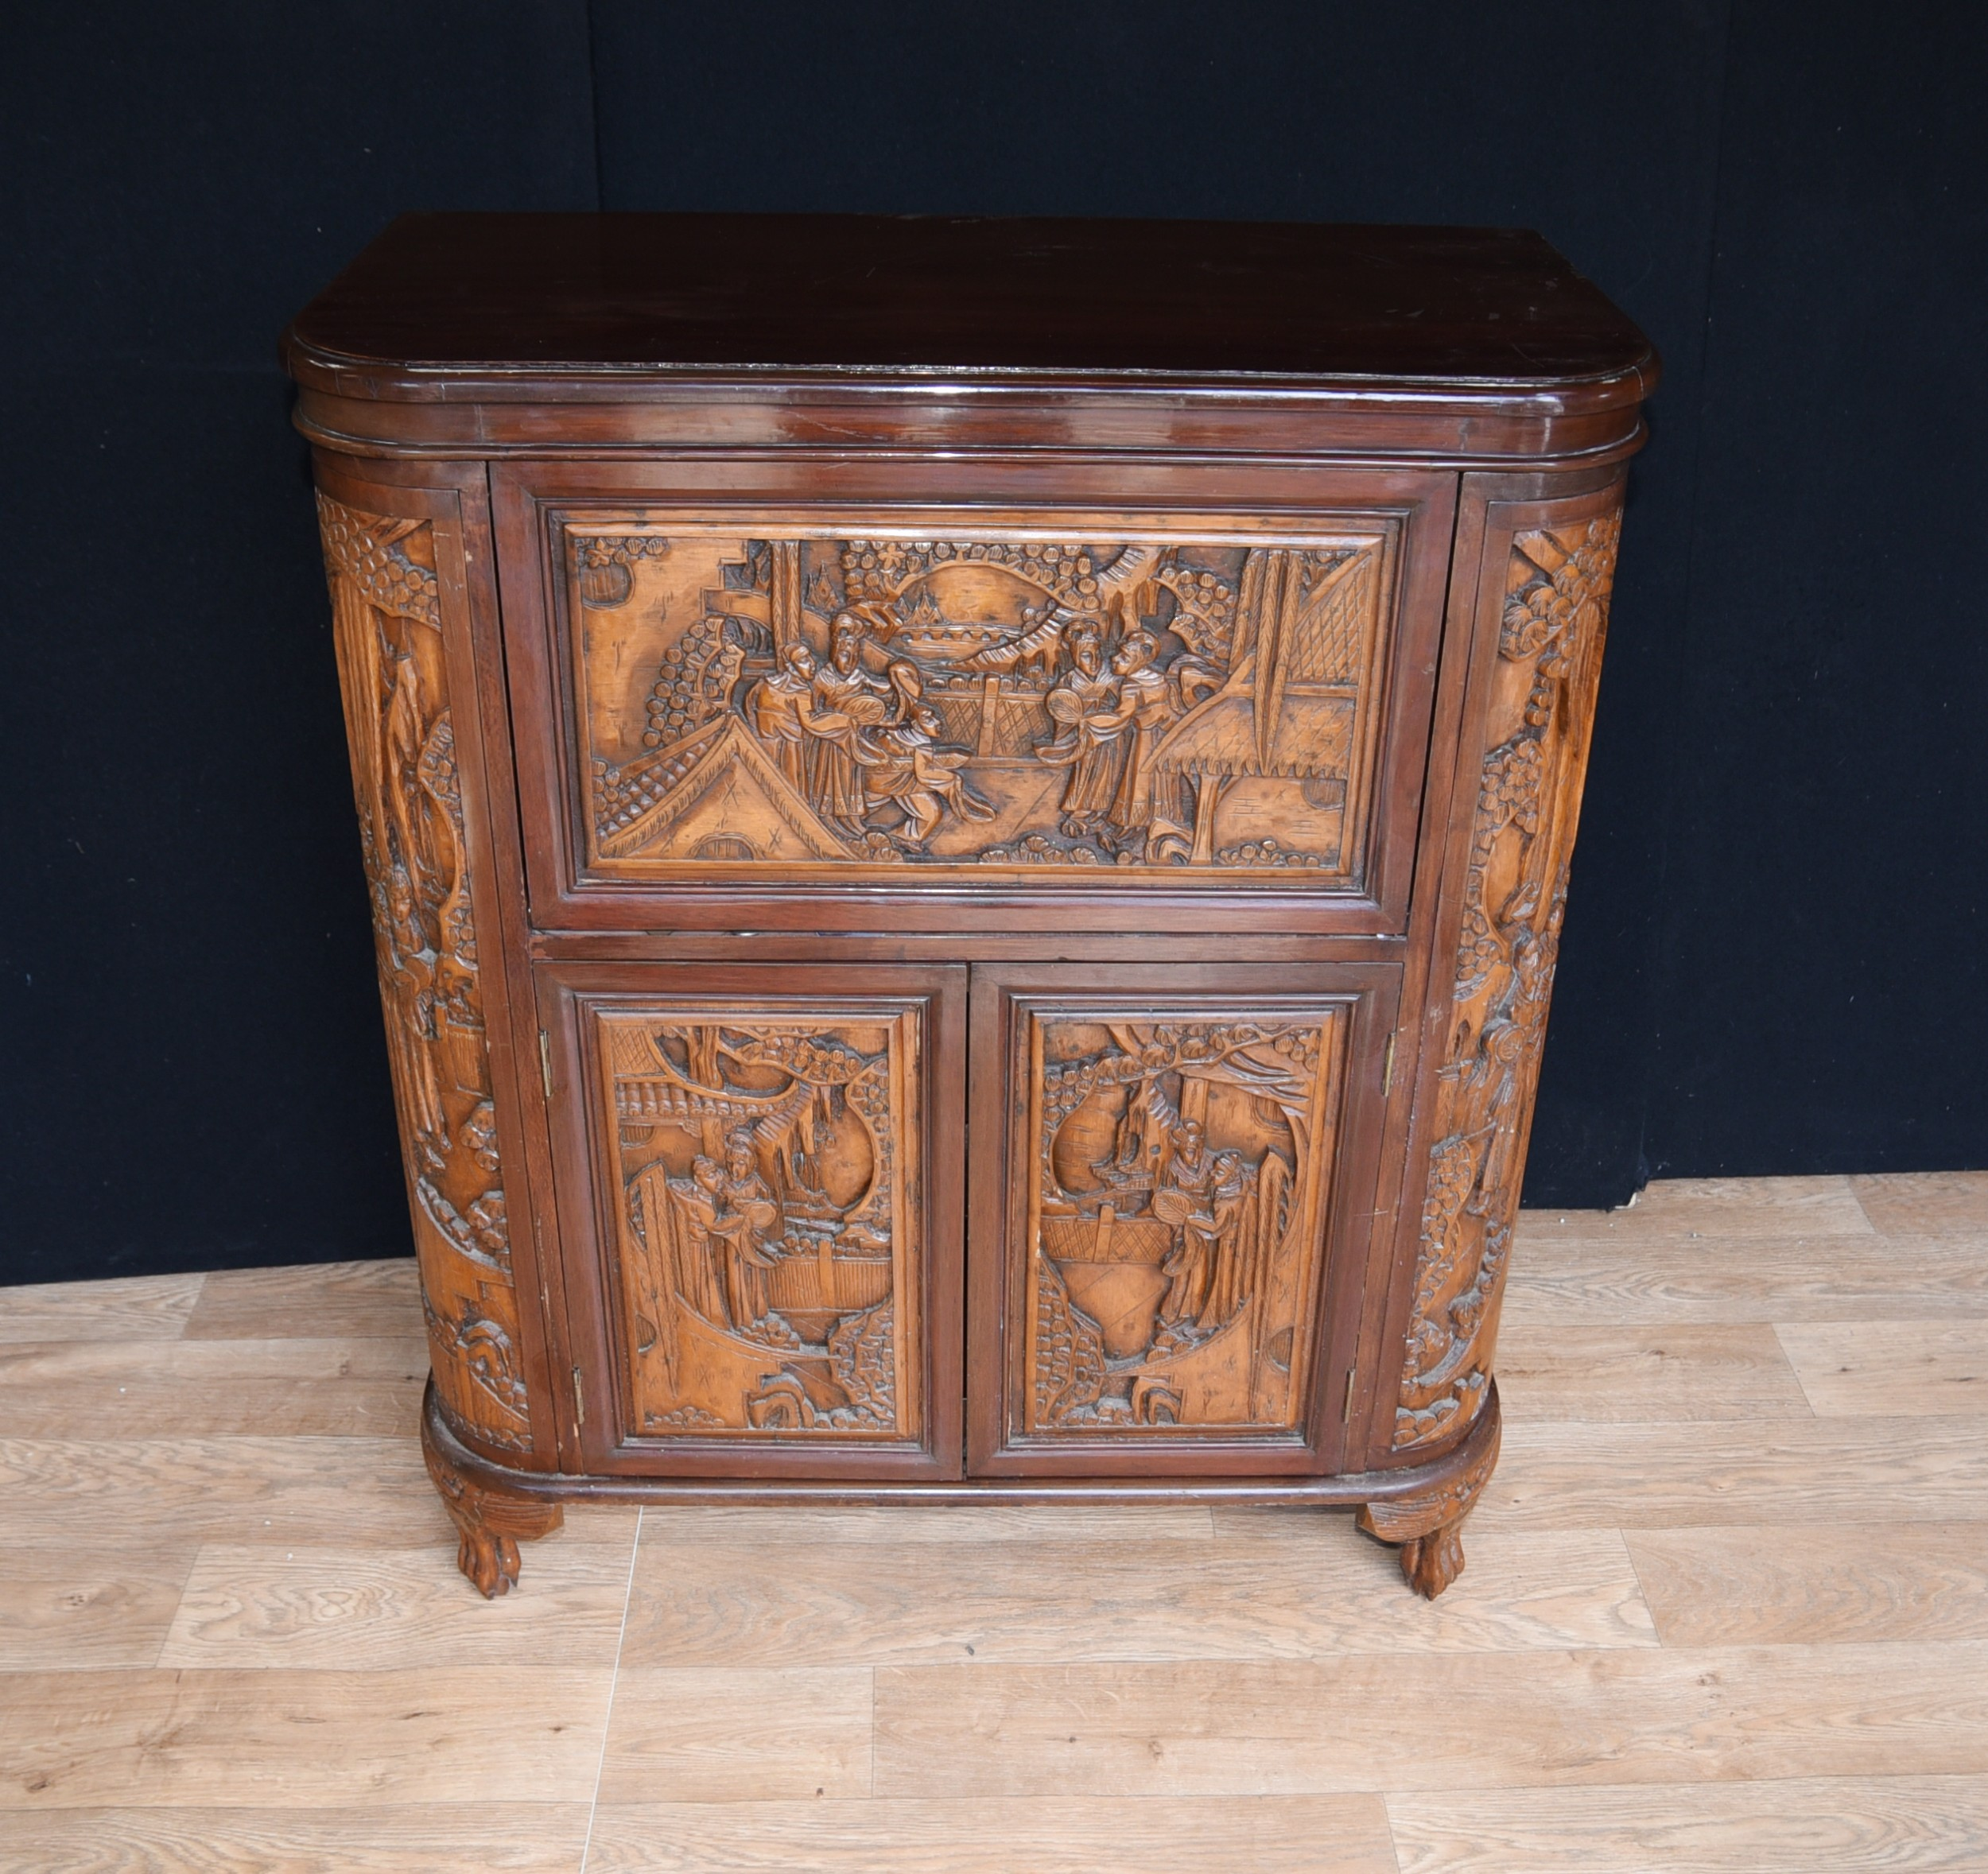 dealer canonburyantiques superhighres 1507351391422 4092846096 - Ten Things You Probably Didn't Know About Chinese Cocktail Cabinet